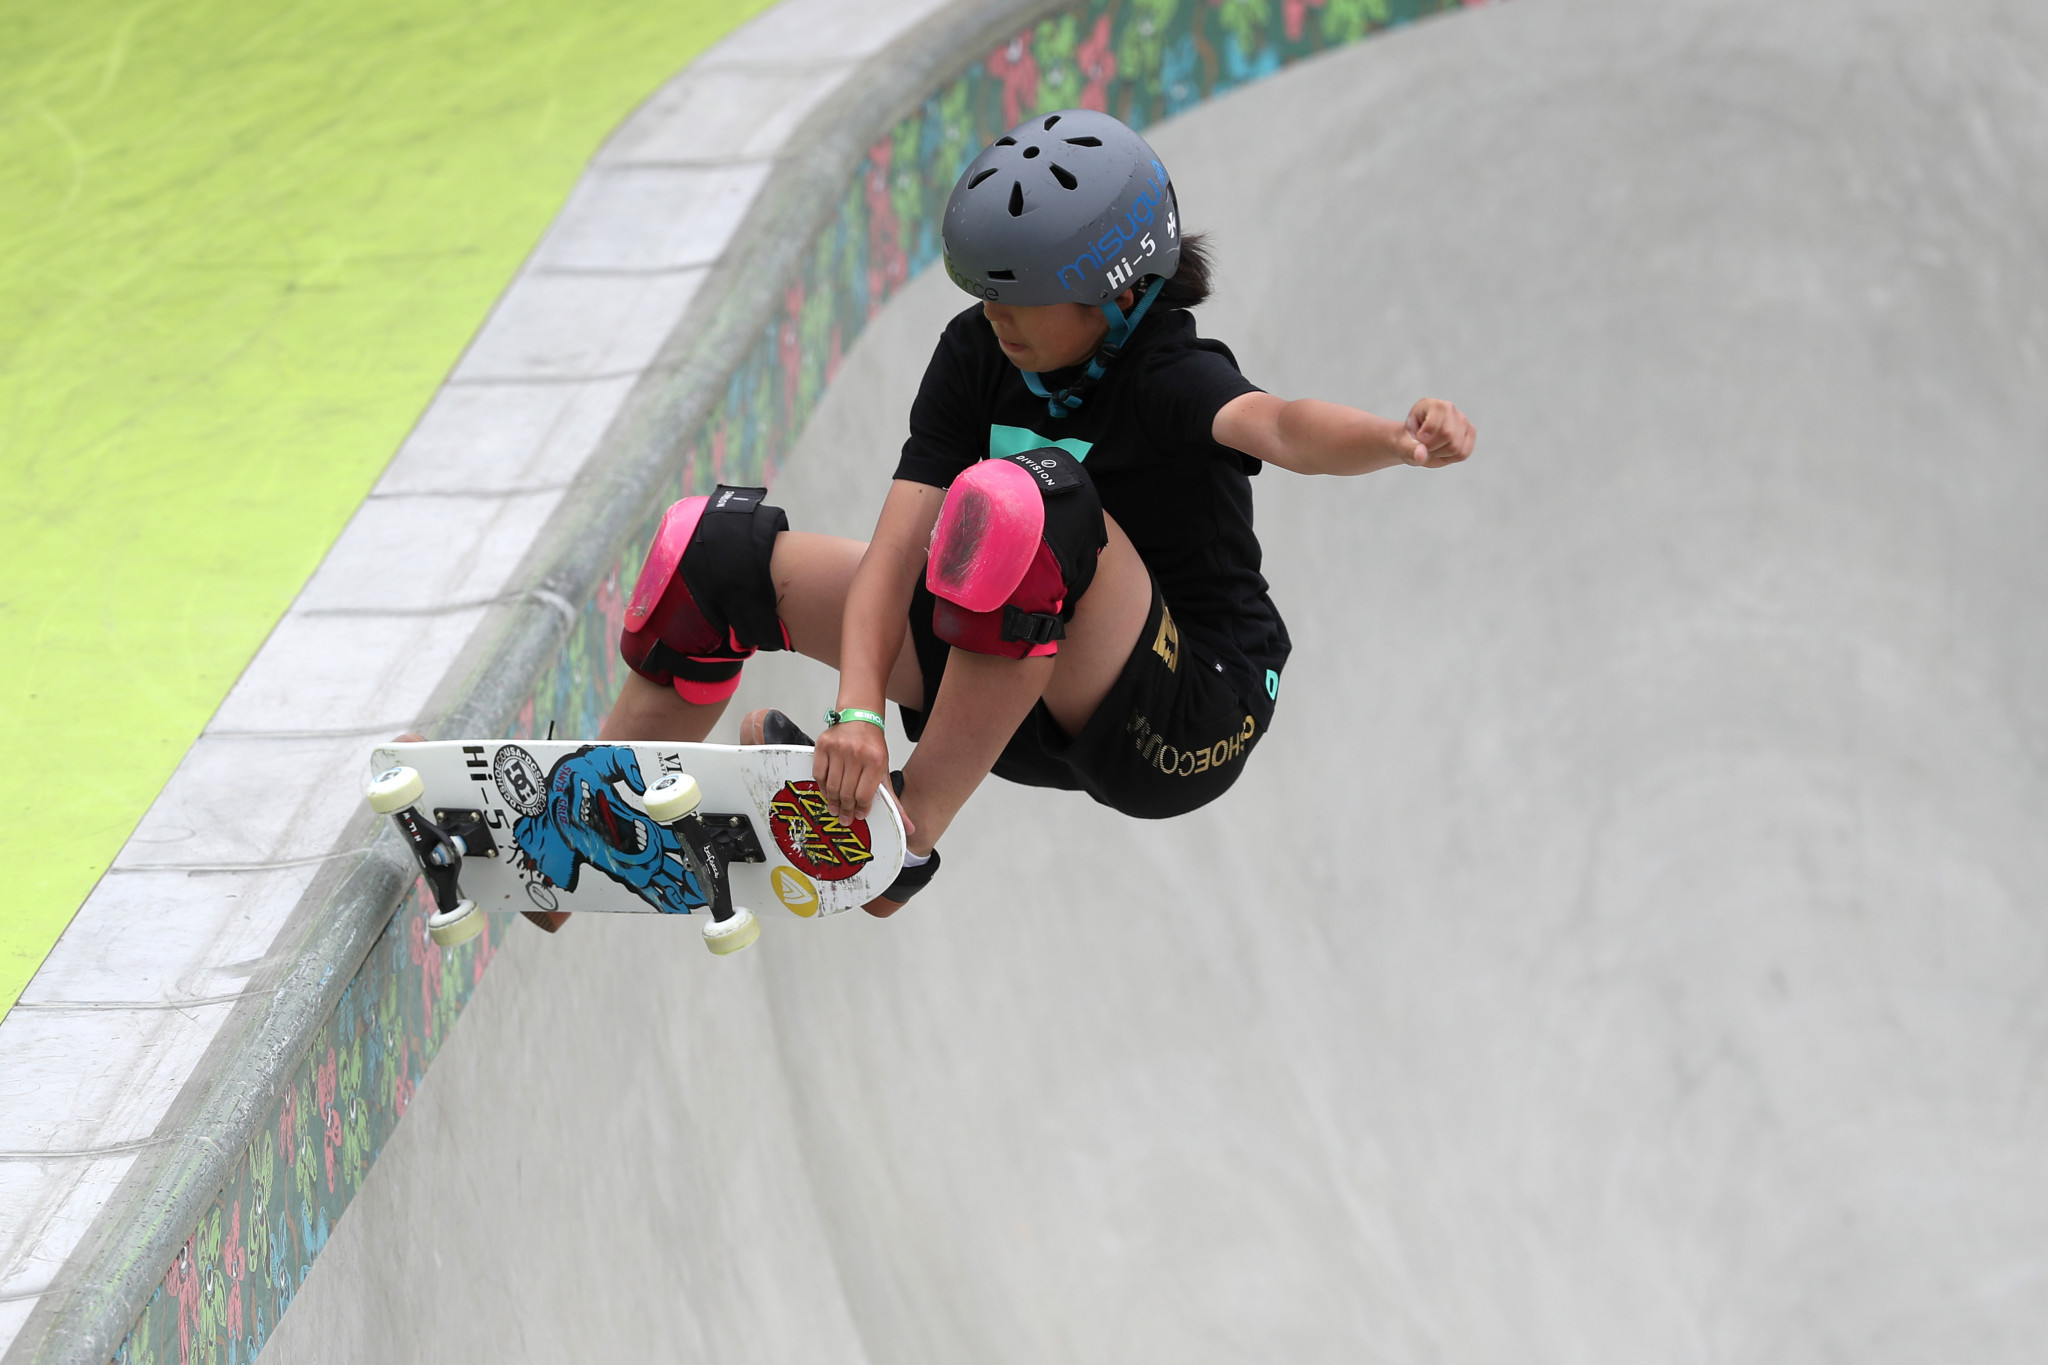 Nanjing welcomes return of finest skateboarders as it hosts latest Tokyo 2020 qualifier